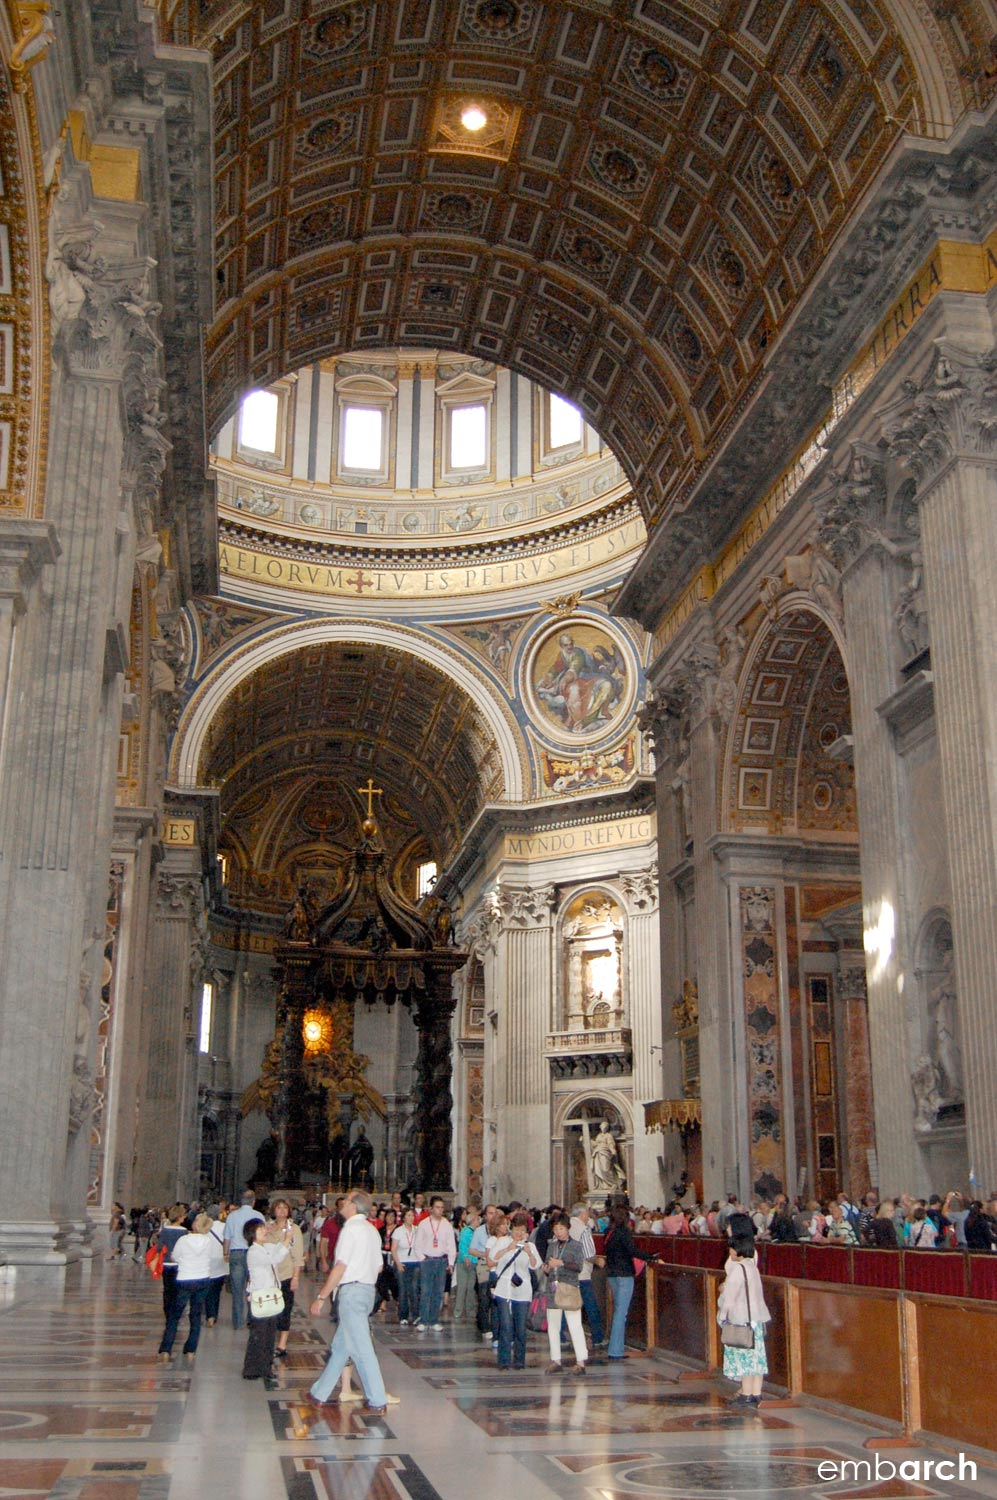 St. Peter's Basilica - interior view of nave and transept.